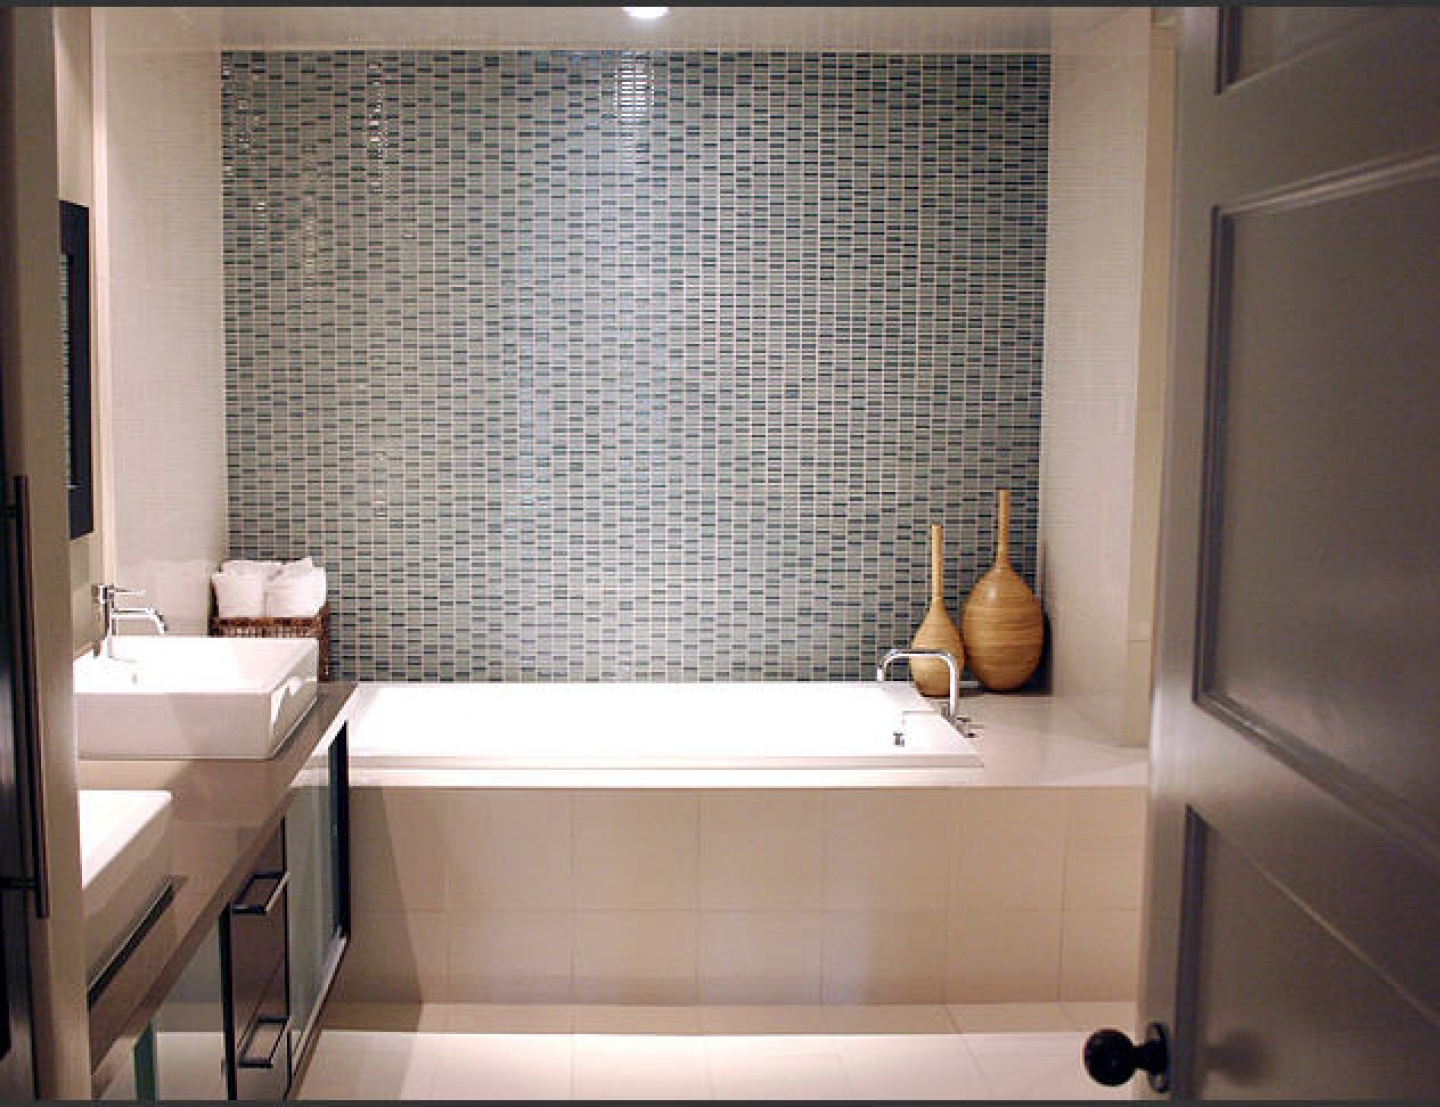 Photo Gallery of the Small Corner Bathtub Exotic Bathroom Ideas Some Great Consideration. Small Corner Bathtub Exotic Bathroom Ideas Some Great